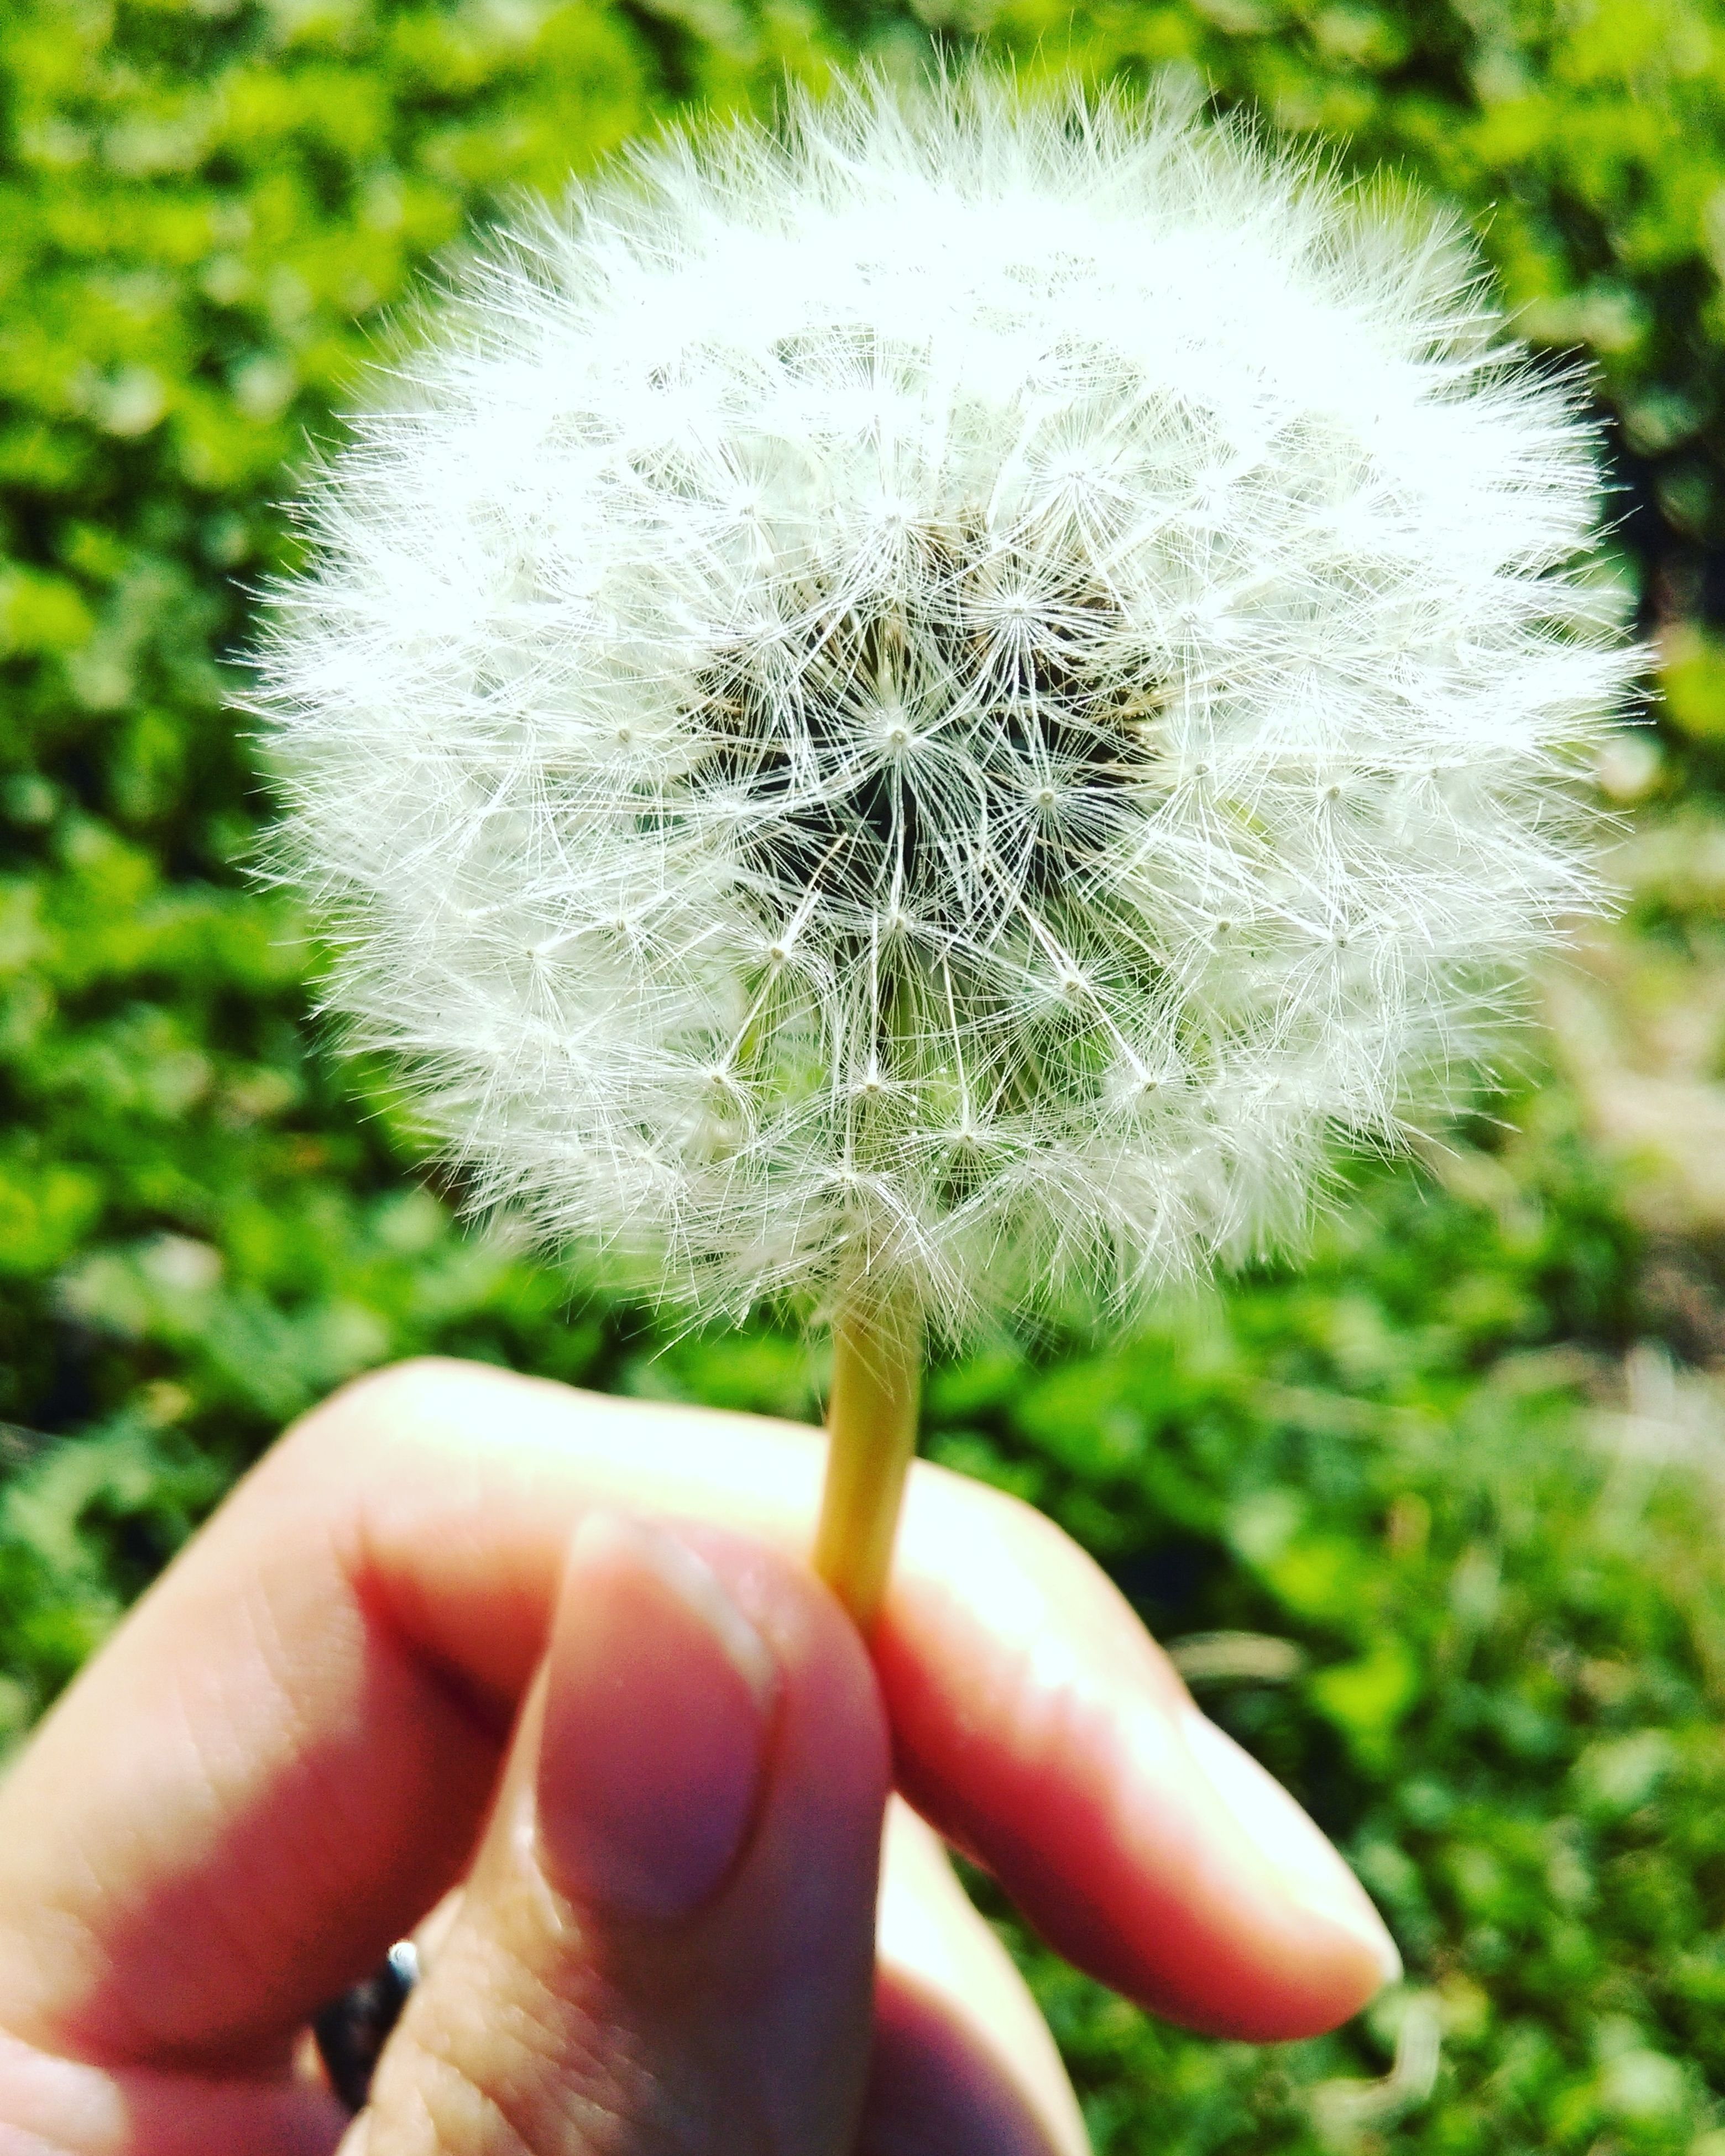 dandelion, flower, single flower, fragility, flower head, close-up, freshness, focus on foreground, growth, white color, person, holding, softness, beauty in nature, nature, uncultivated, dandelion seed, one person, part of, white